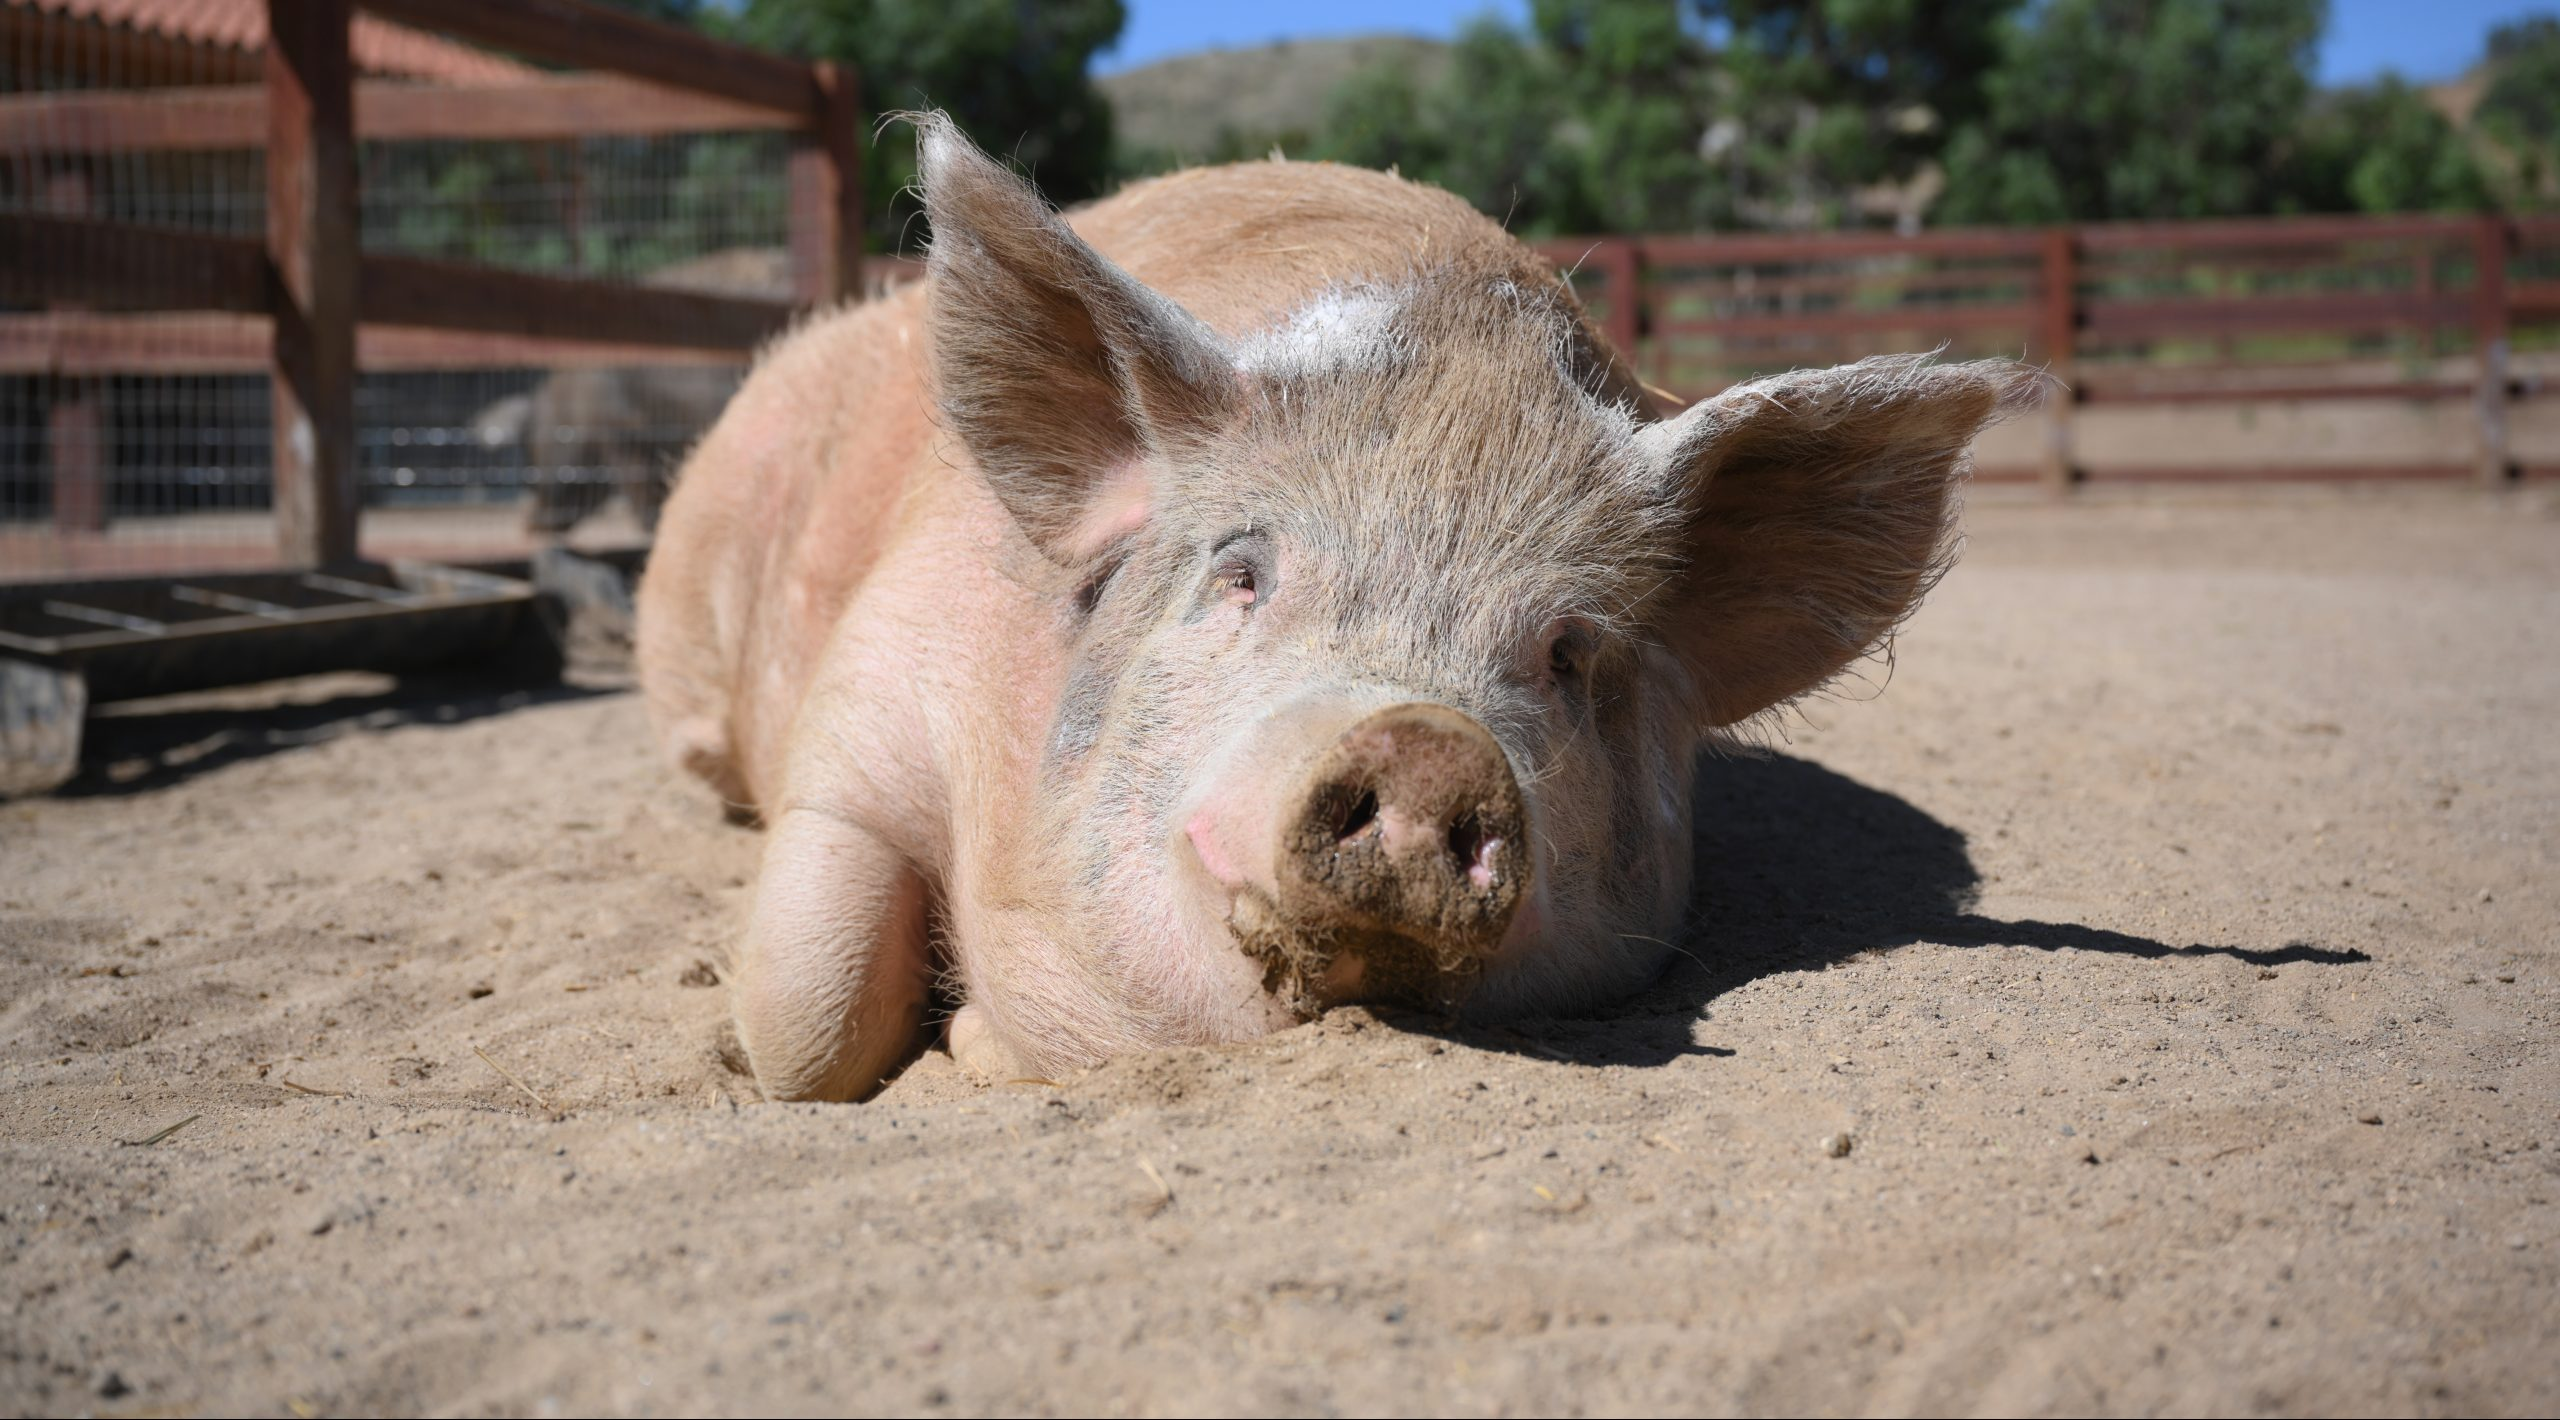 Von D Pig at Farm Sanctuary's Southern California shelter